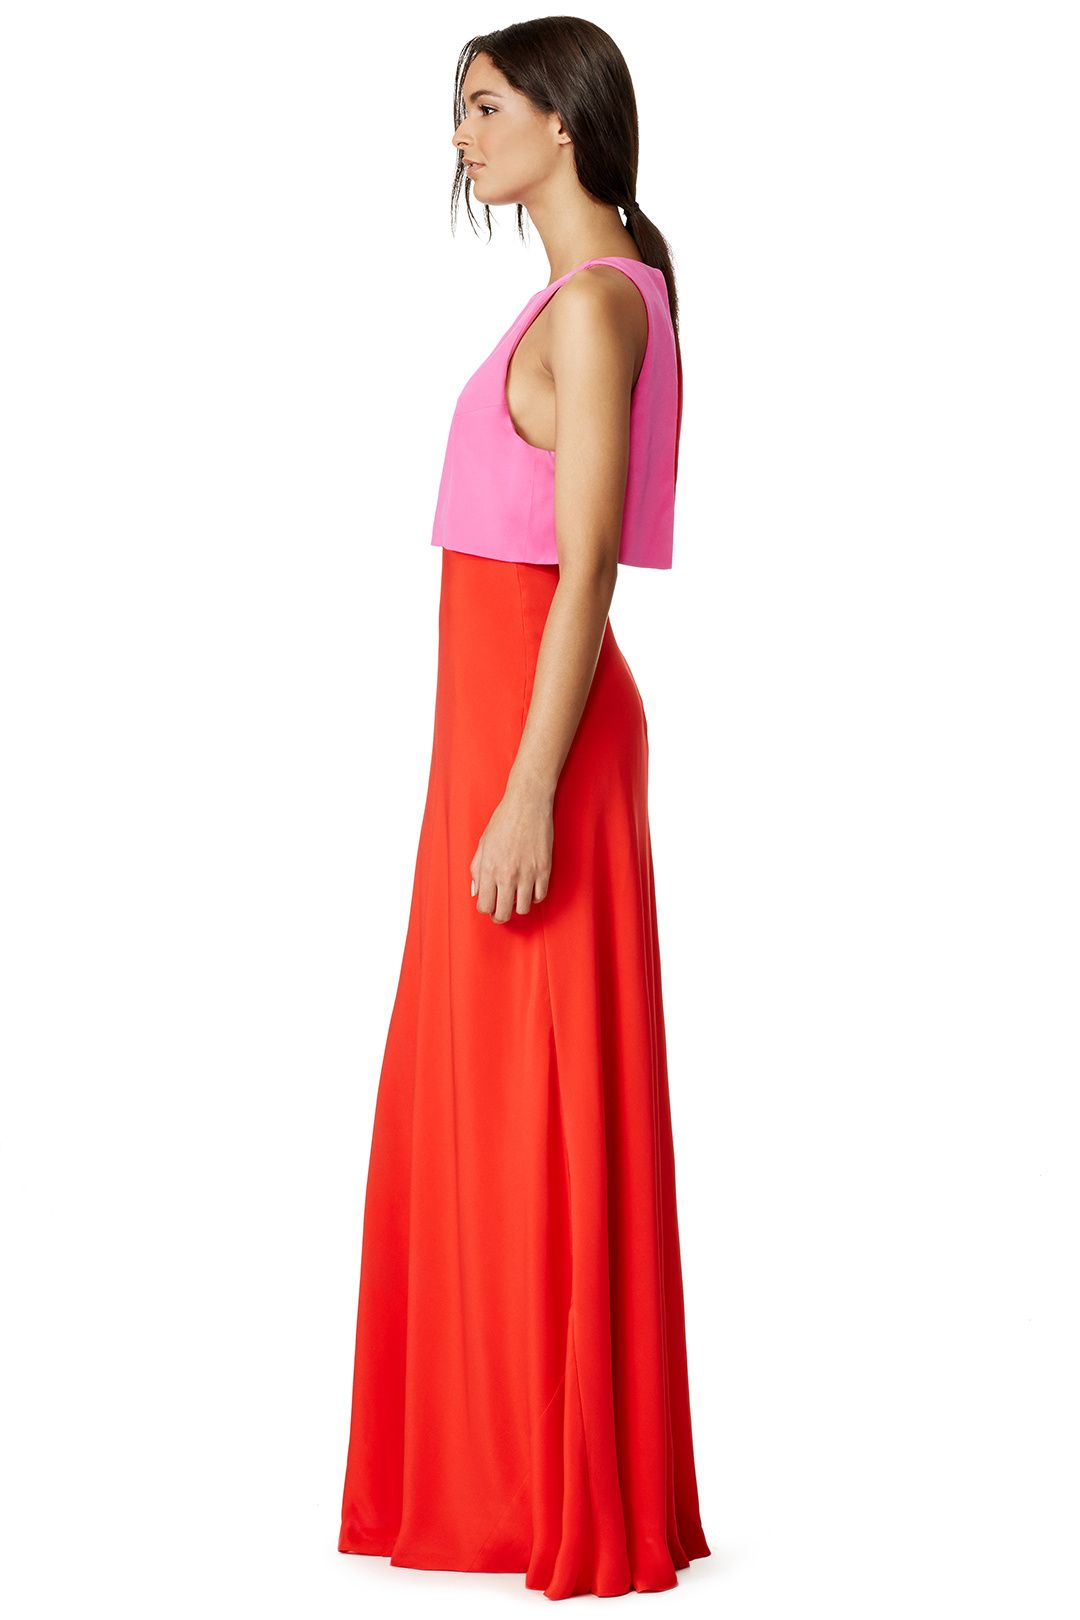 Lovely Duo Gown by Jill Jill Stuart for $100 - Page 2 | Rent The ...